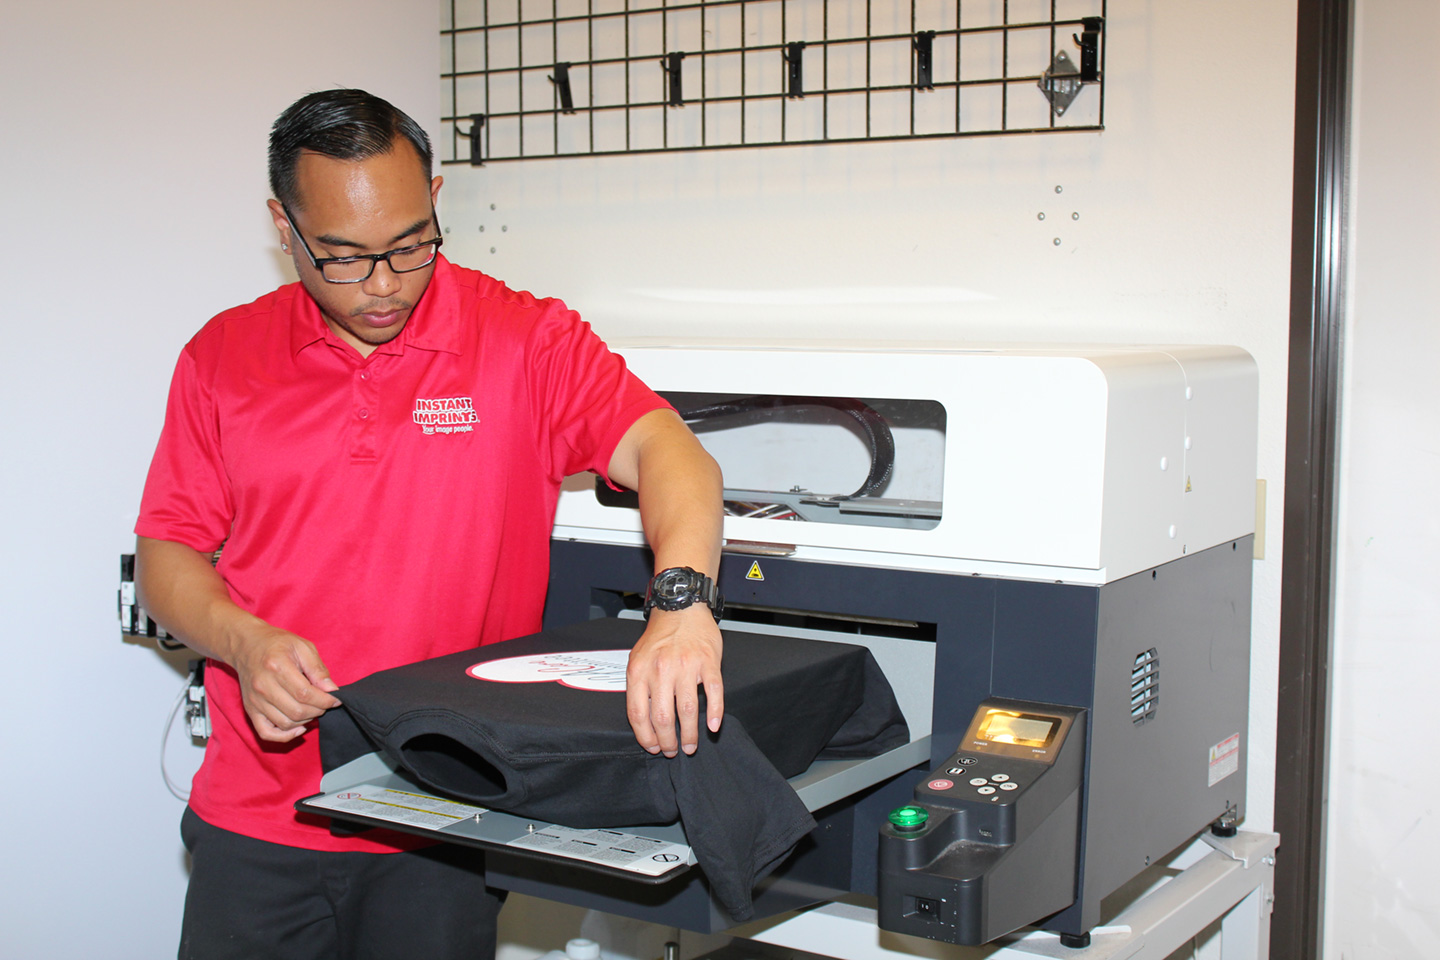 Design your own t shirt louisville ky - Custom T Shirt Printing On A Direct To Garment Printer